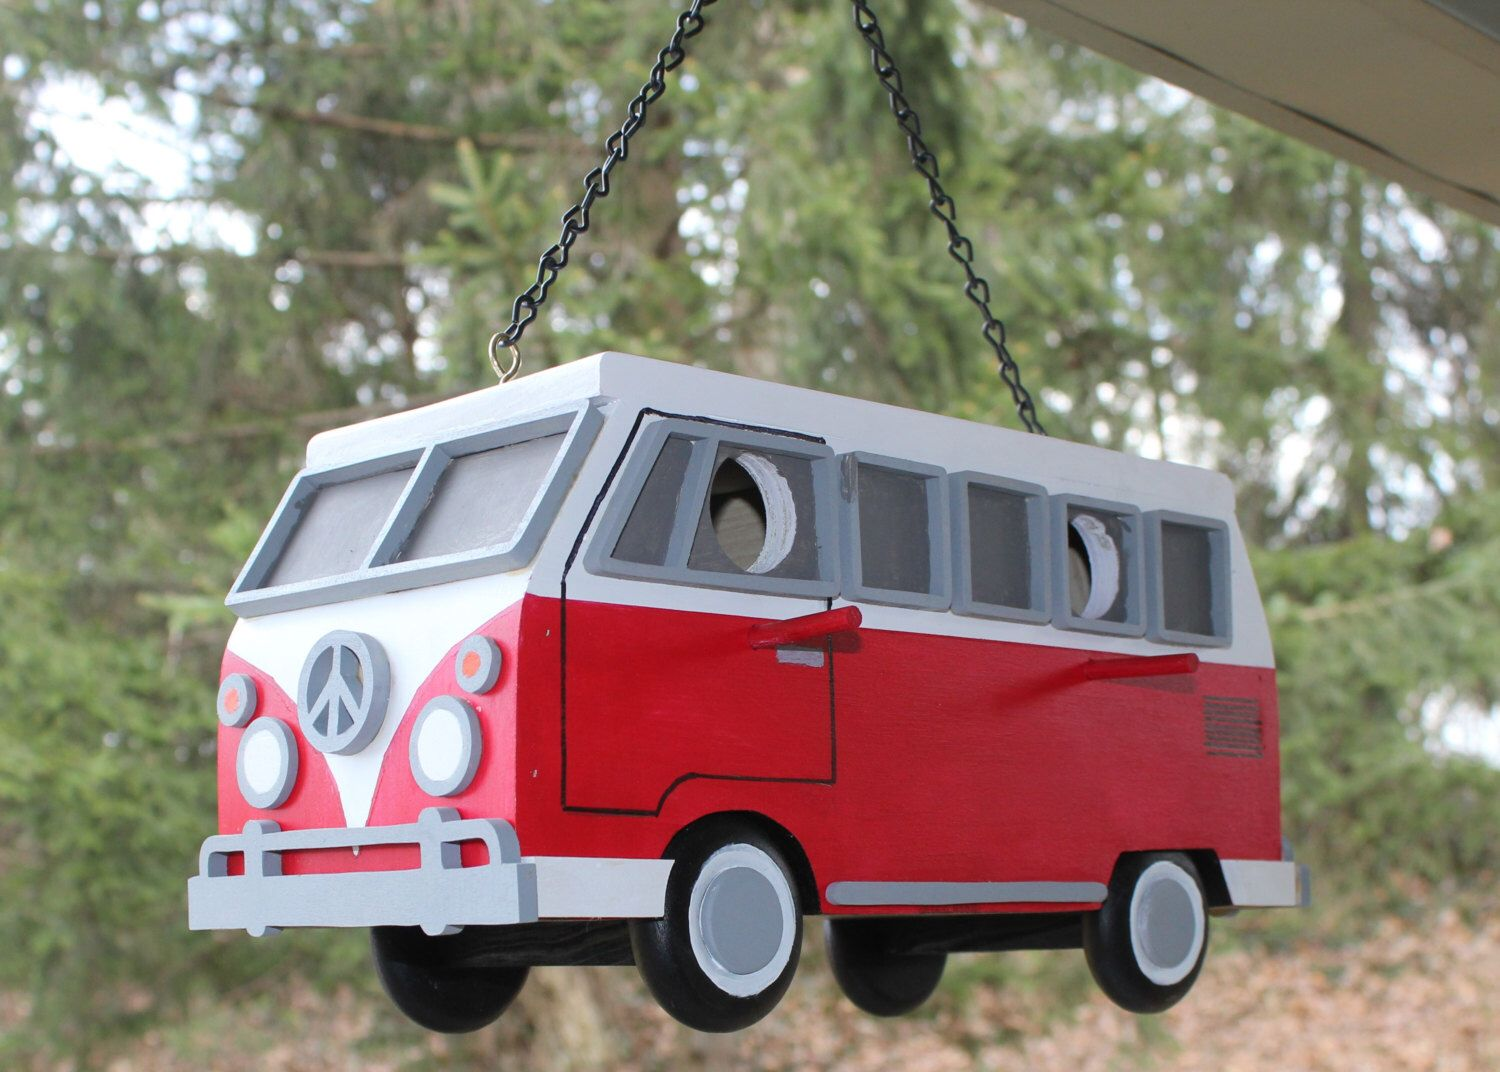 Vw bus birdhouse by countrytimber on etsy sy